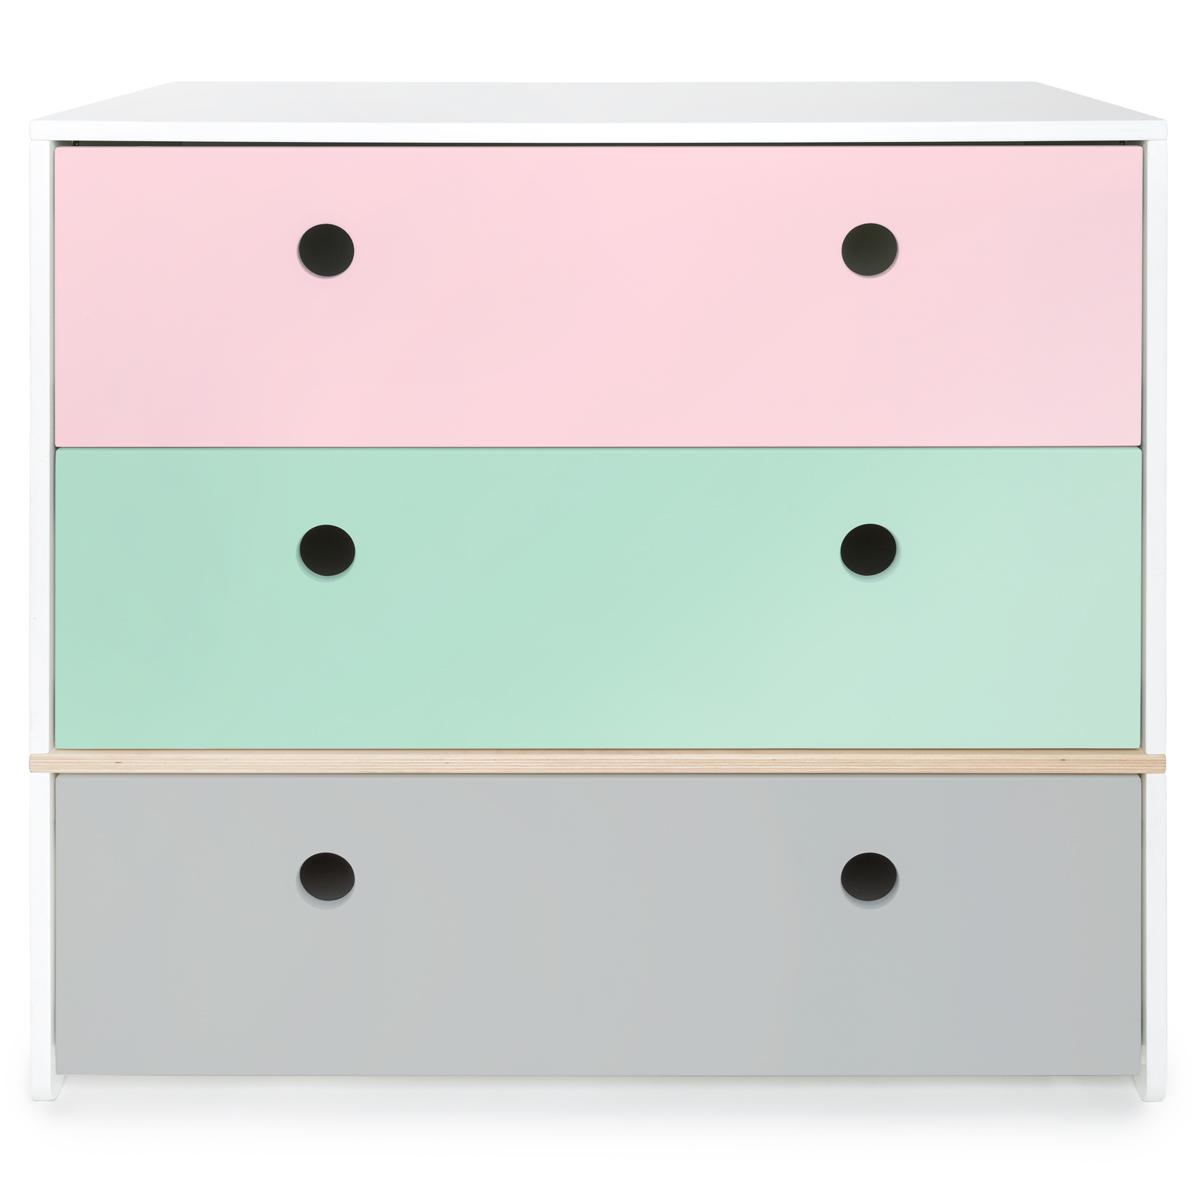 Commode COLORFLEX façades tiroirs sweet pink-mint-pearl grey